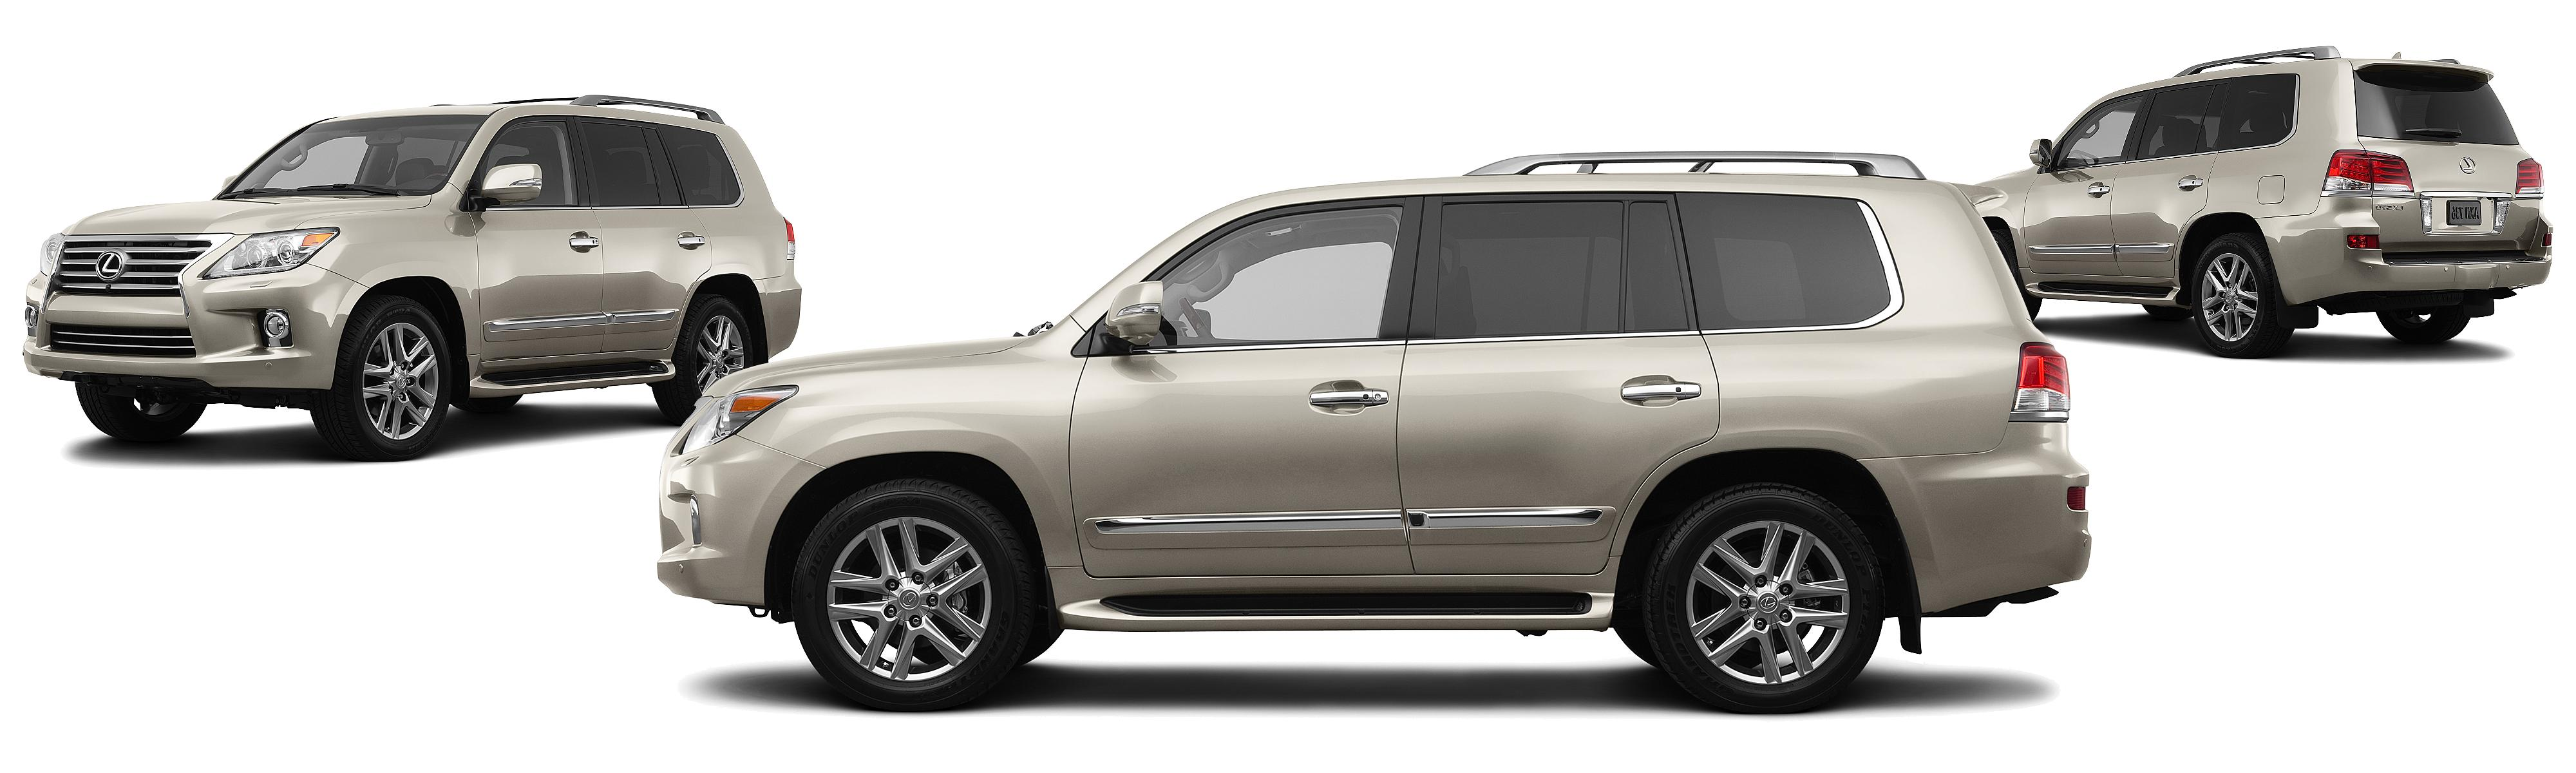 used suv lexus generation toyota this highlander image rx report nation opinions or limited forum